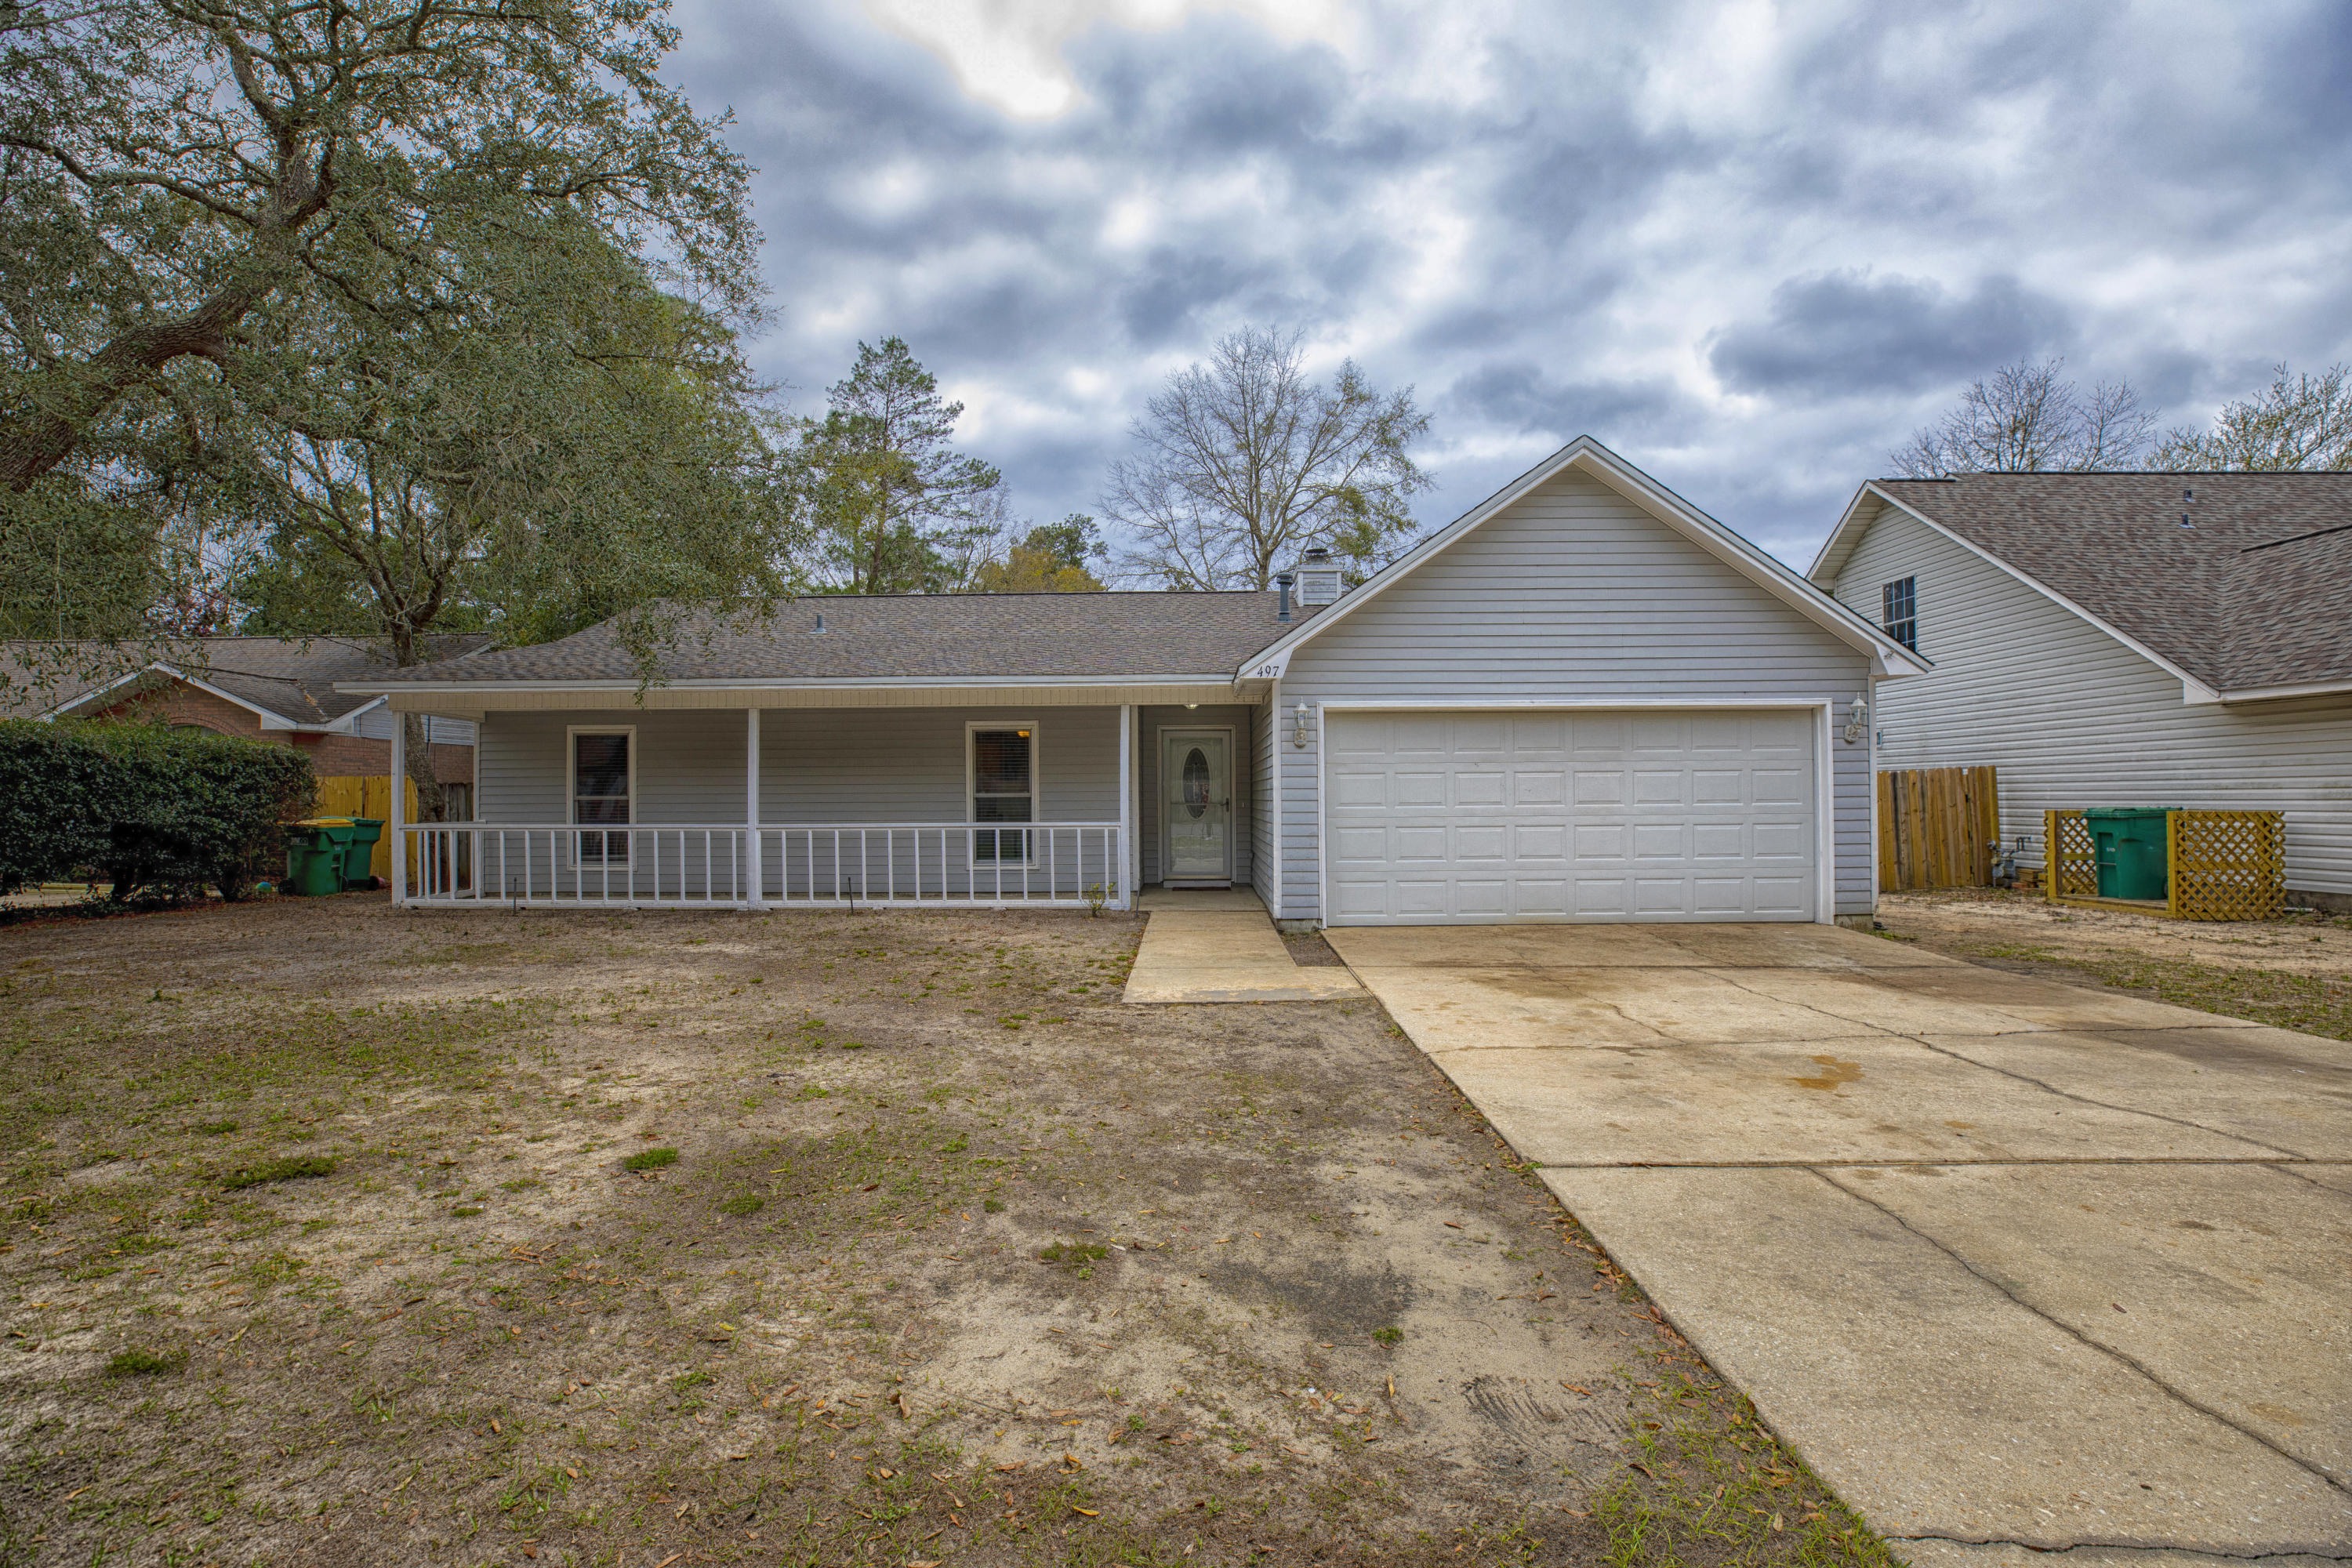 Photo of home for sale at 497 20th, Niceville FL